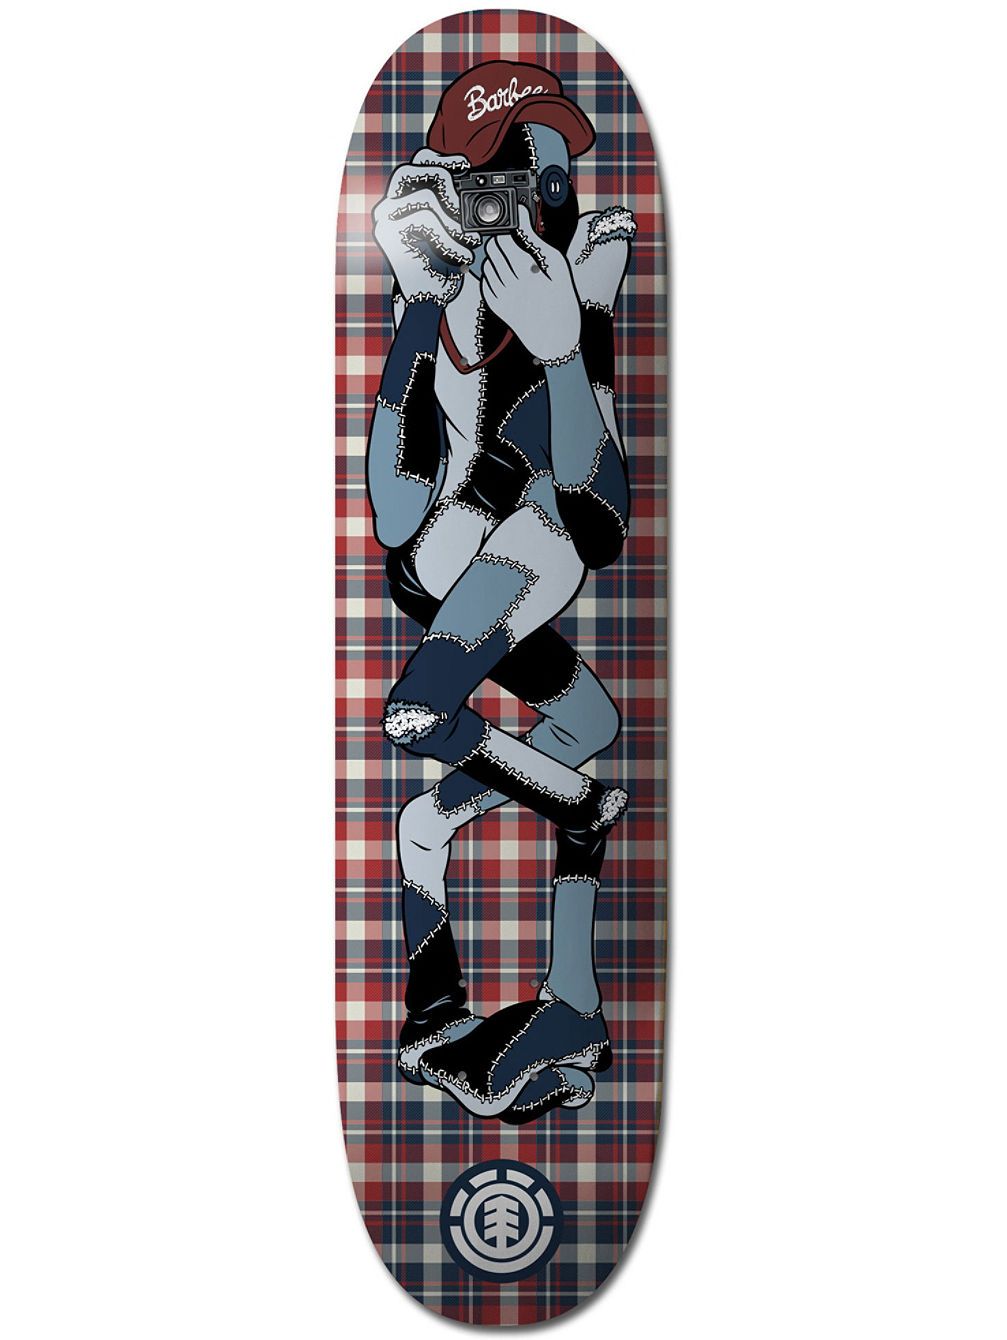 "Barbee Goodwin 8.2"" Skate Deck"